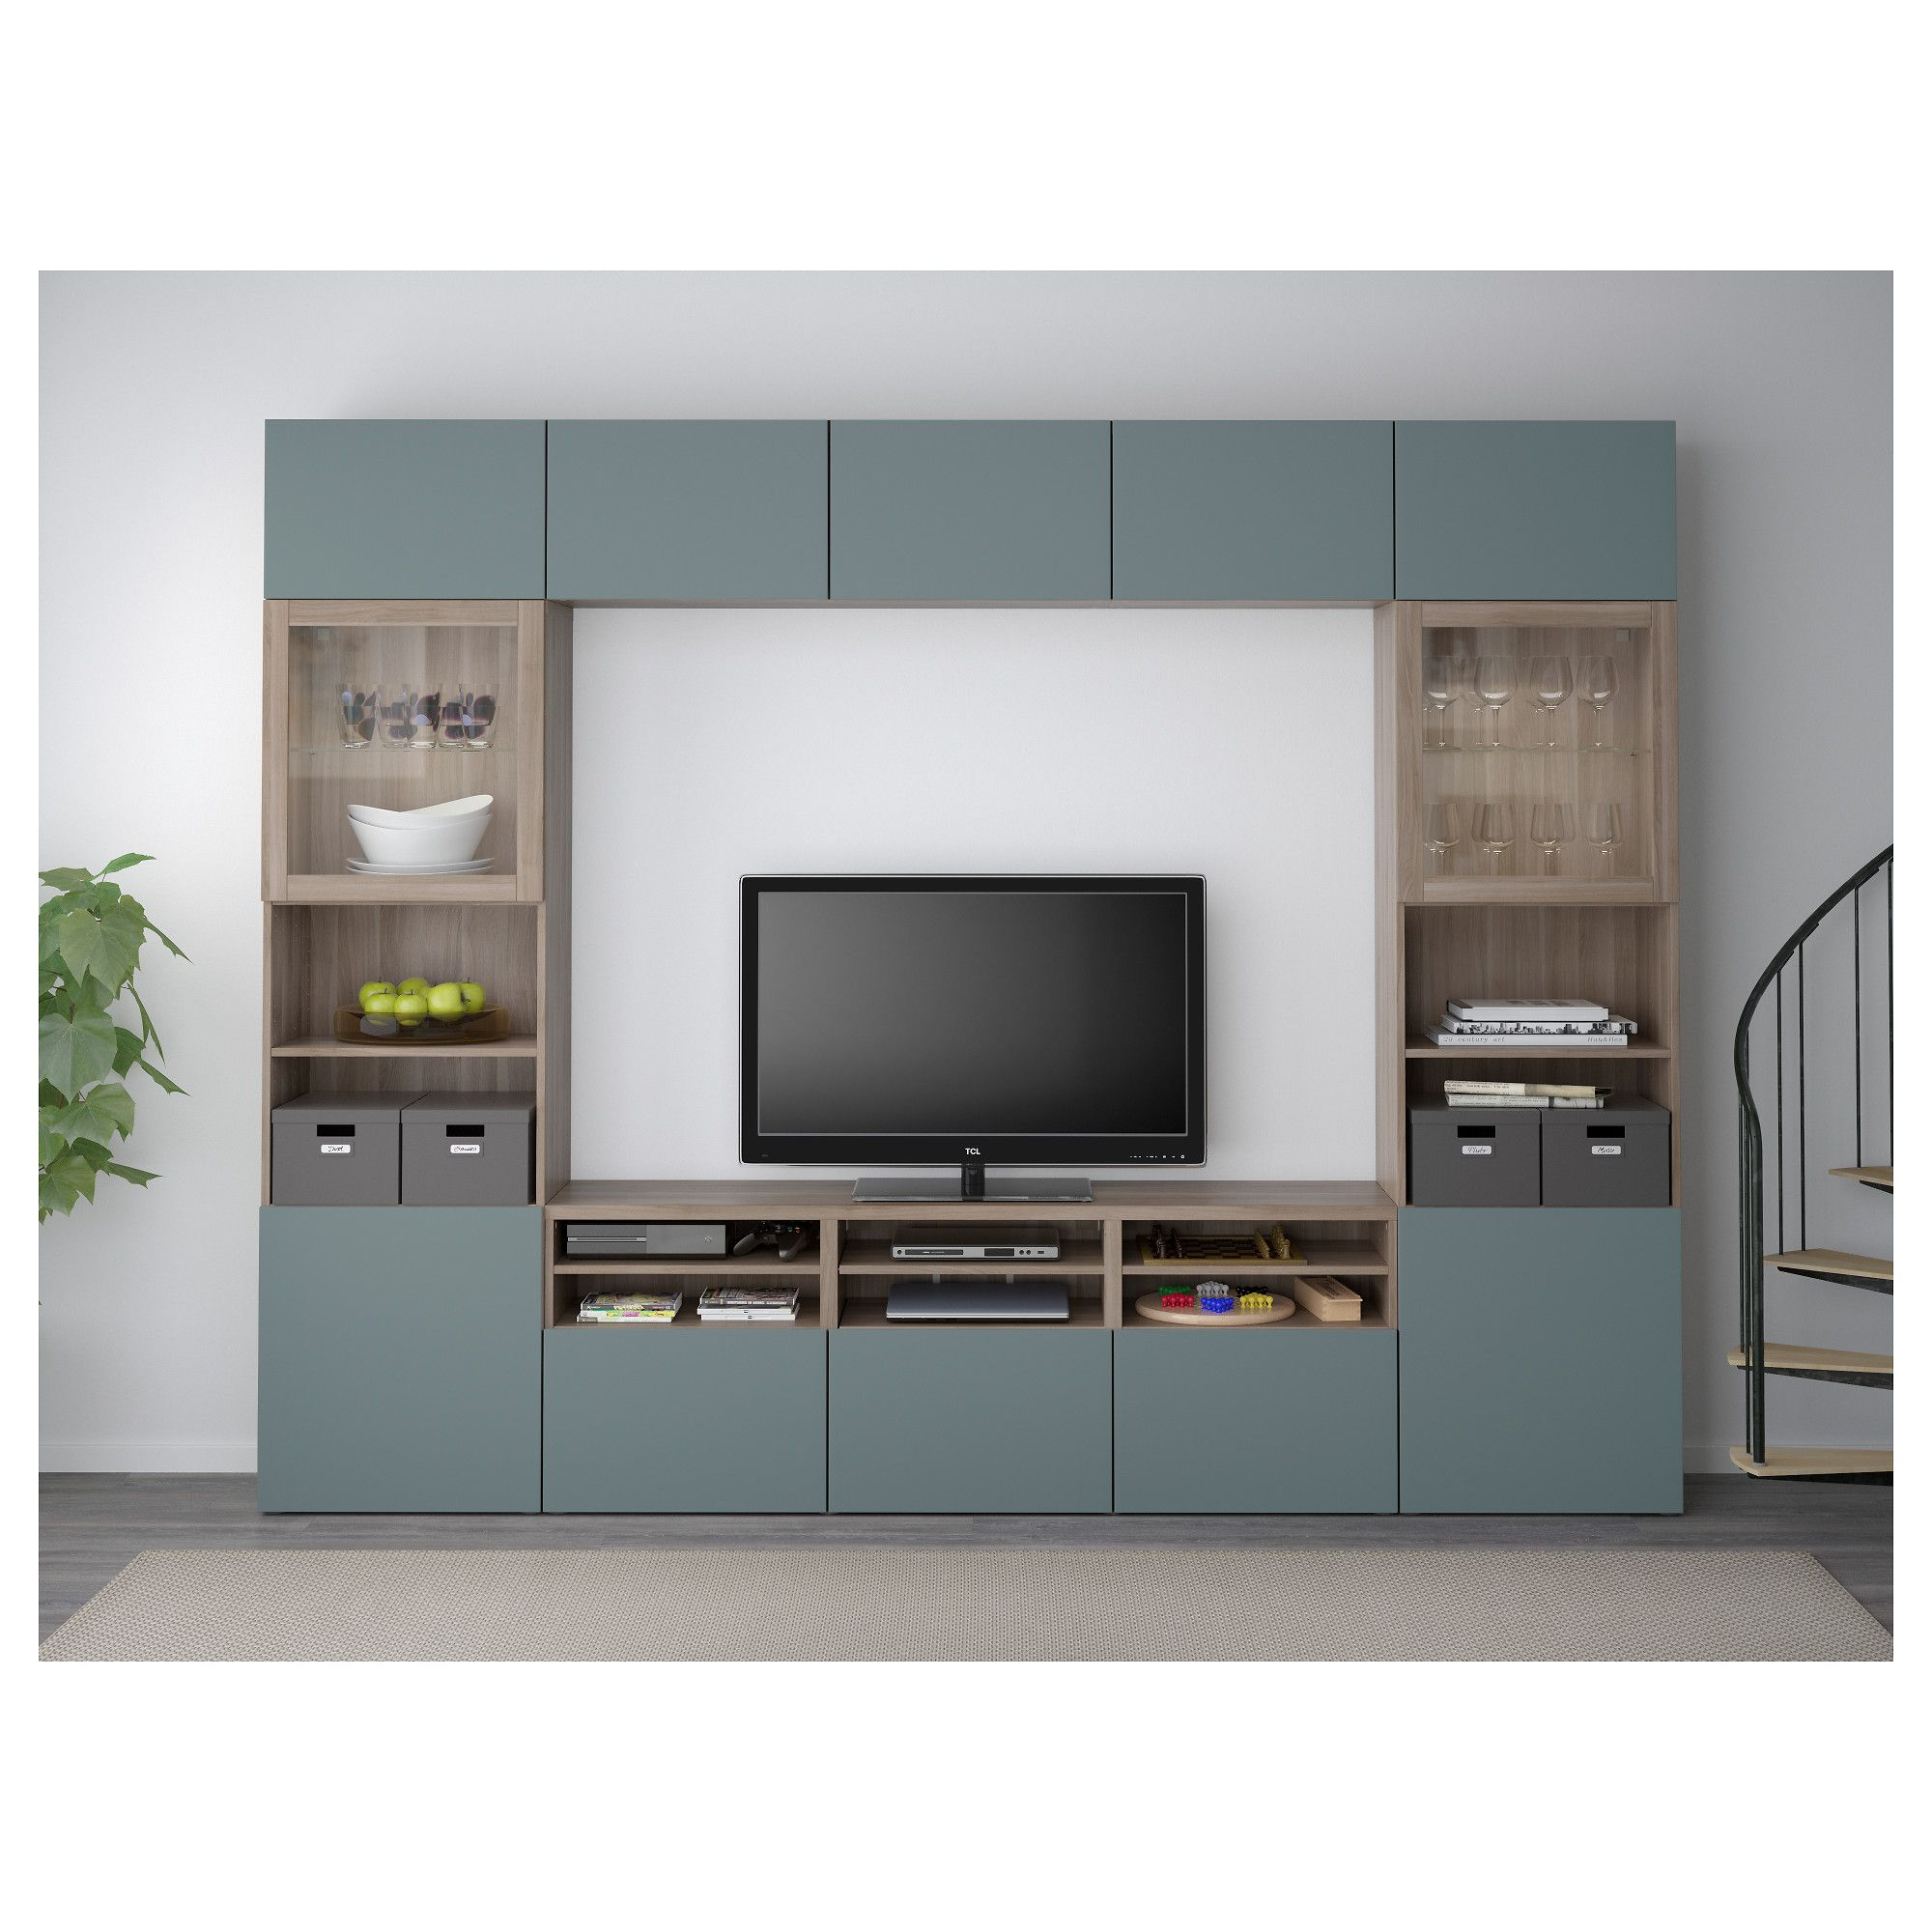 Furniture Home Furnishings Find Your Inspiration Tv Storage Ikea Tv Ikea